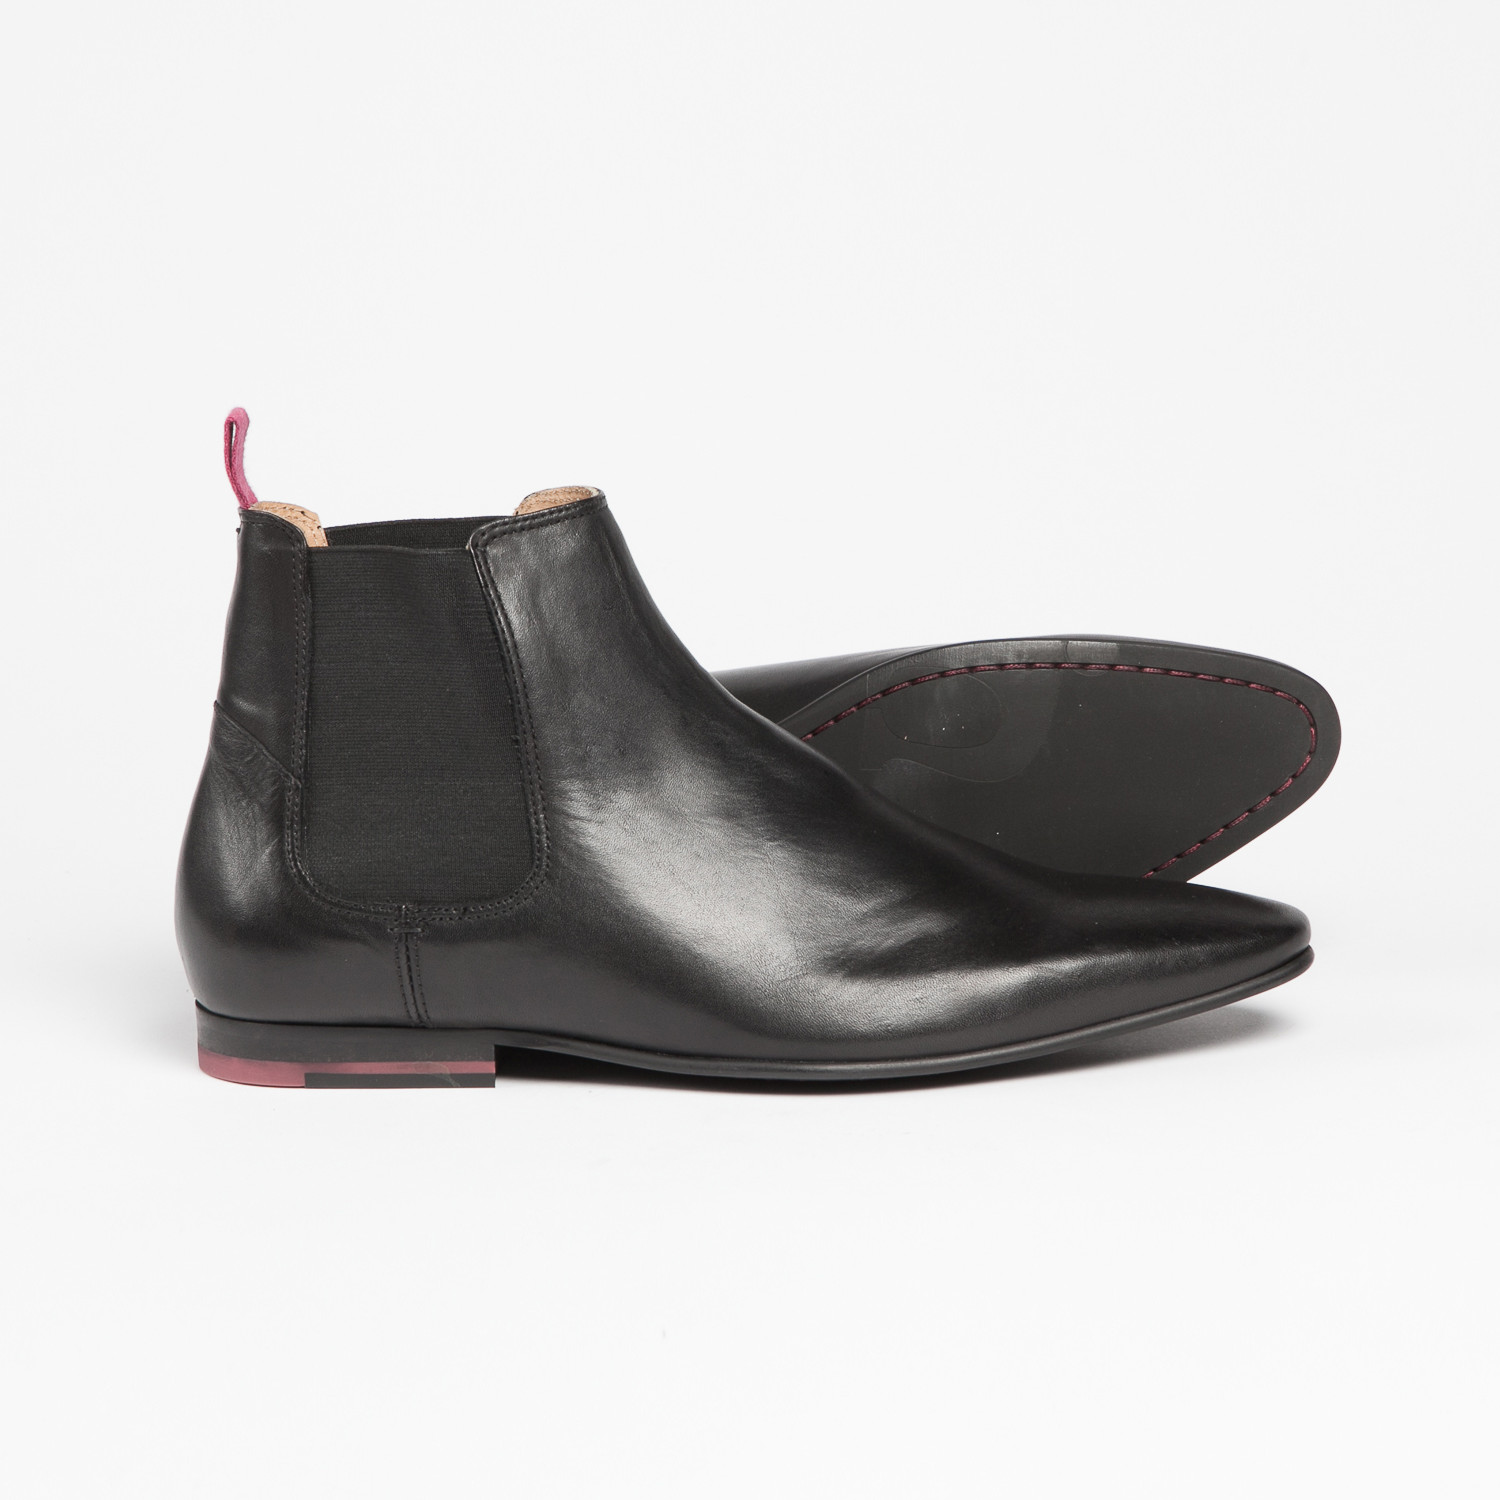 3eac97616 Kensington Chelsea Boot // Black (UK: 11) - Merc Shoes - Touch of Modern